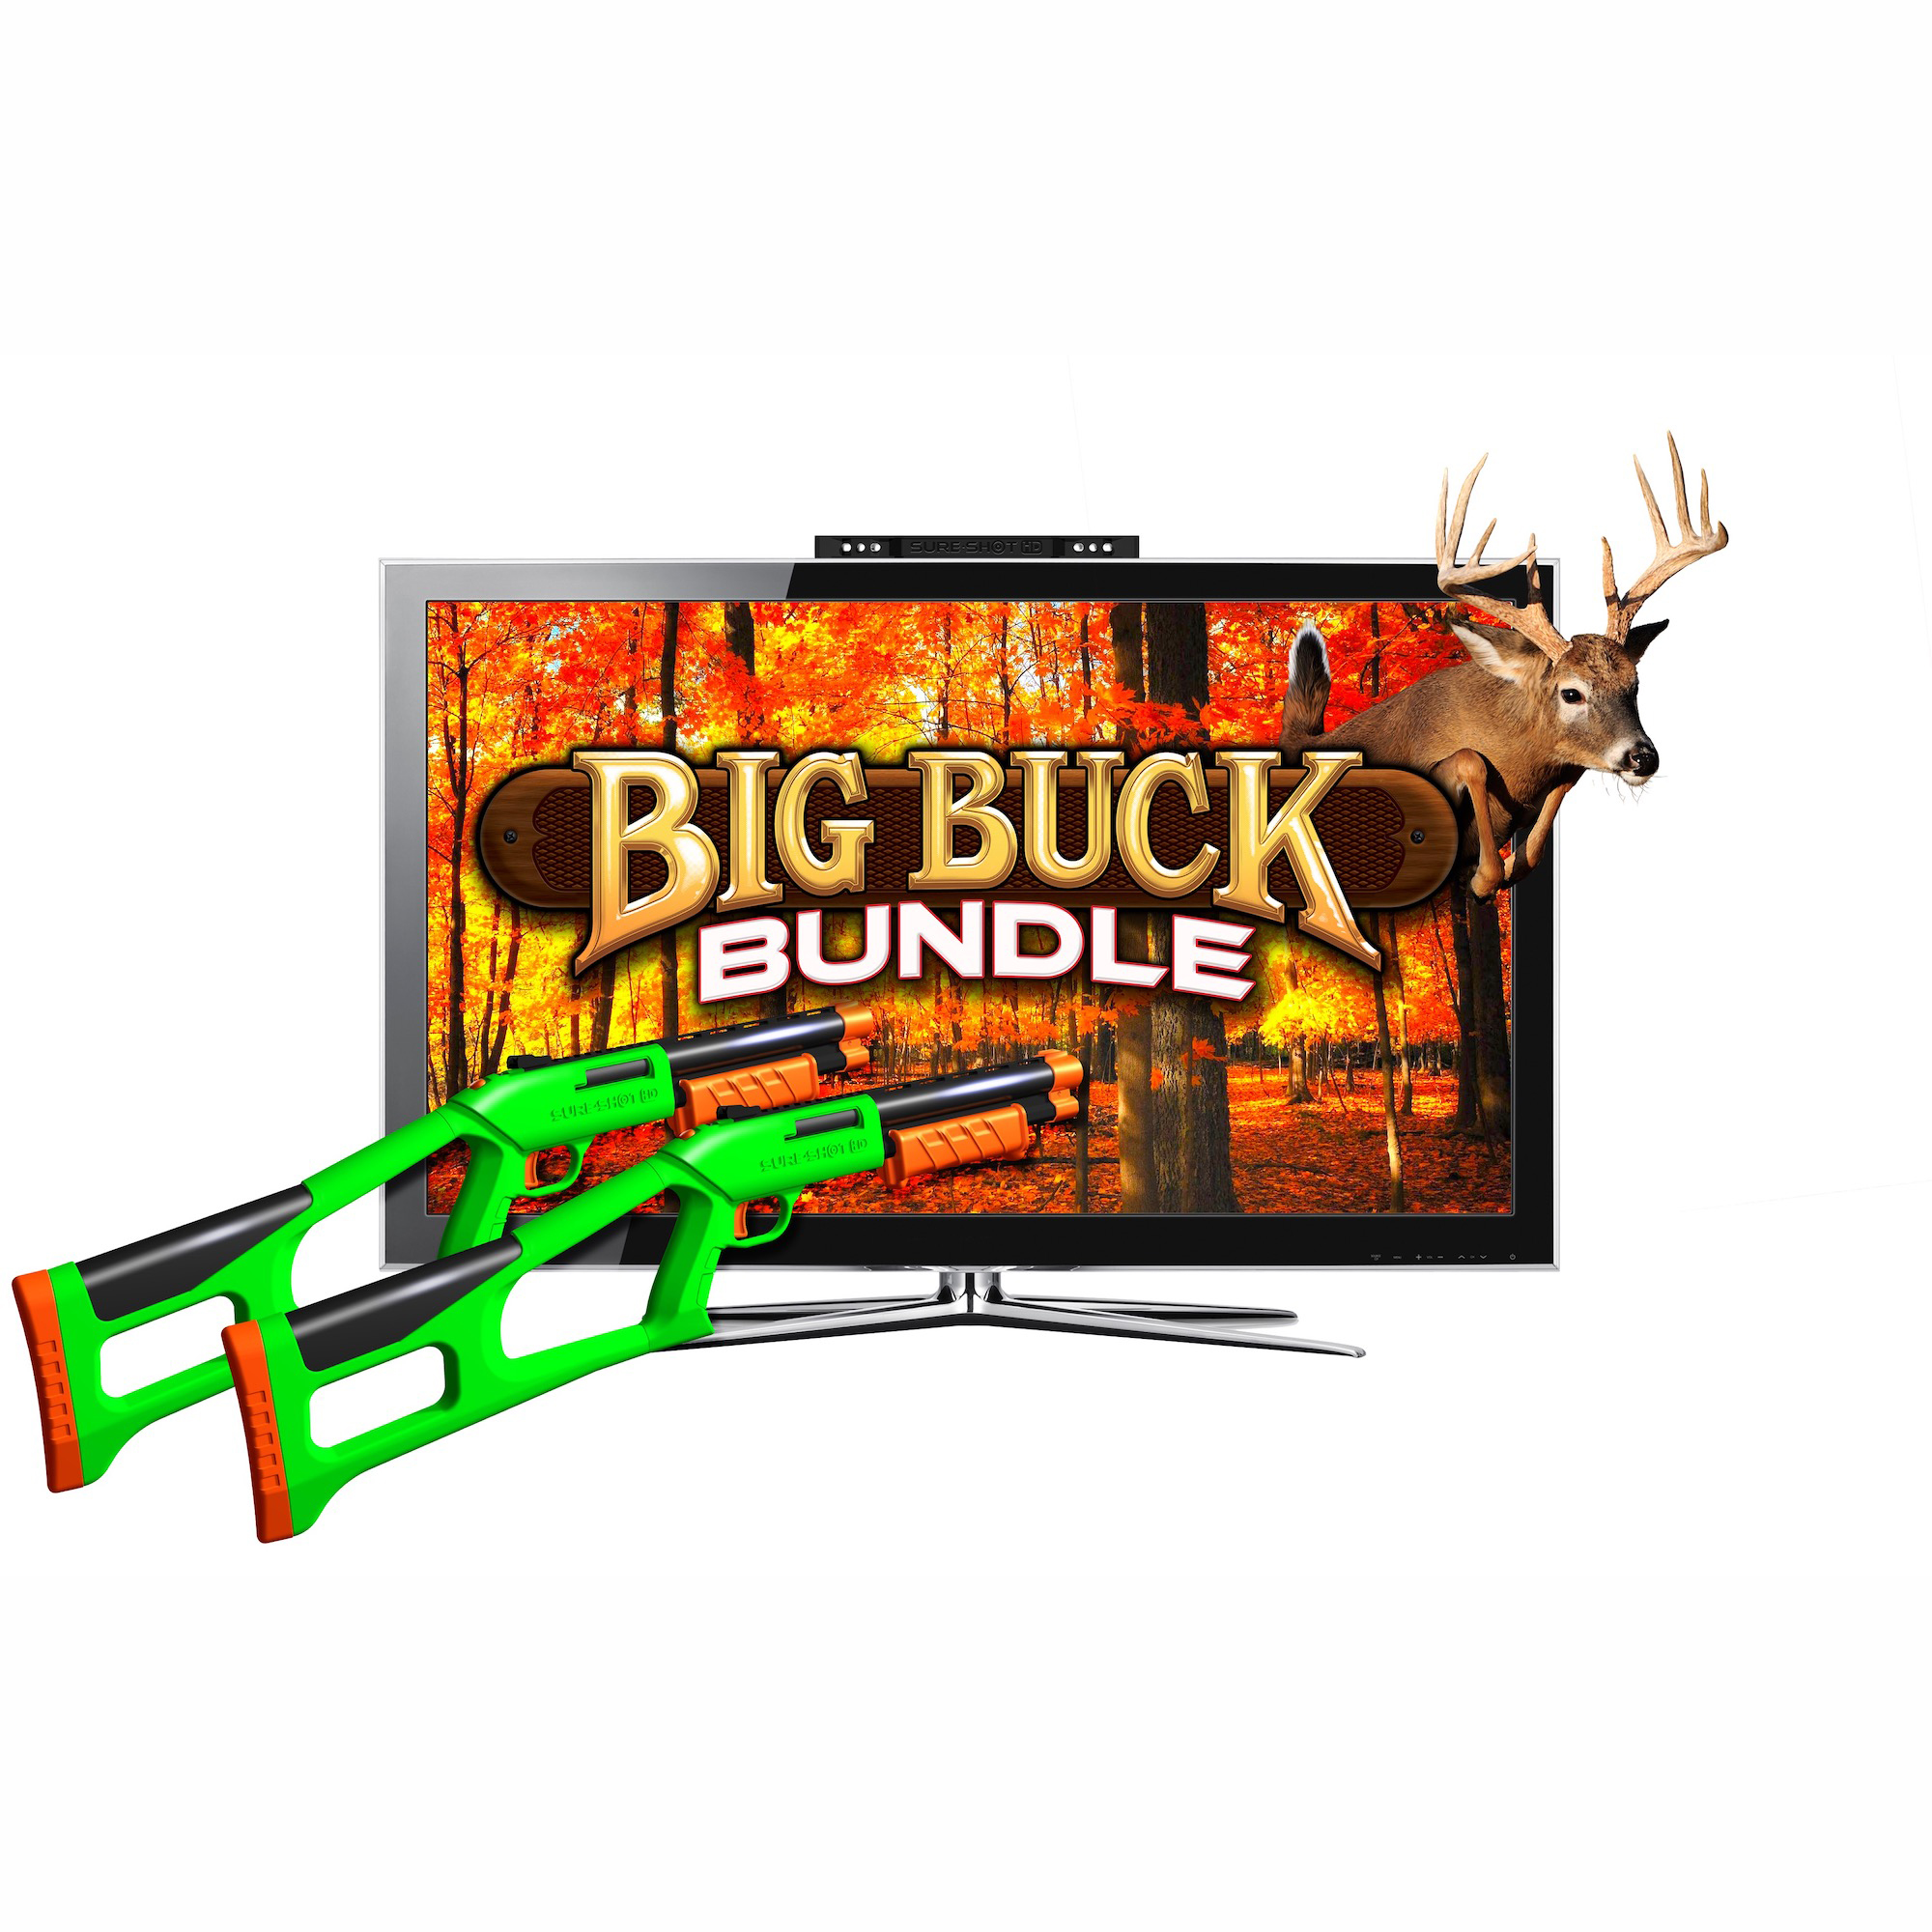 Super Happy Fun Fun Sure Shot HD Big Buck Bundle Gaming Console with 2 Games 2 Controllers